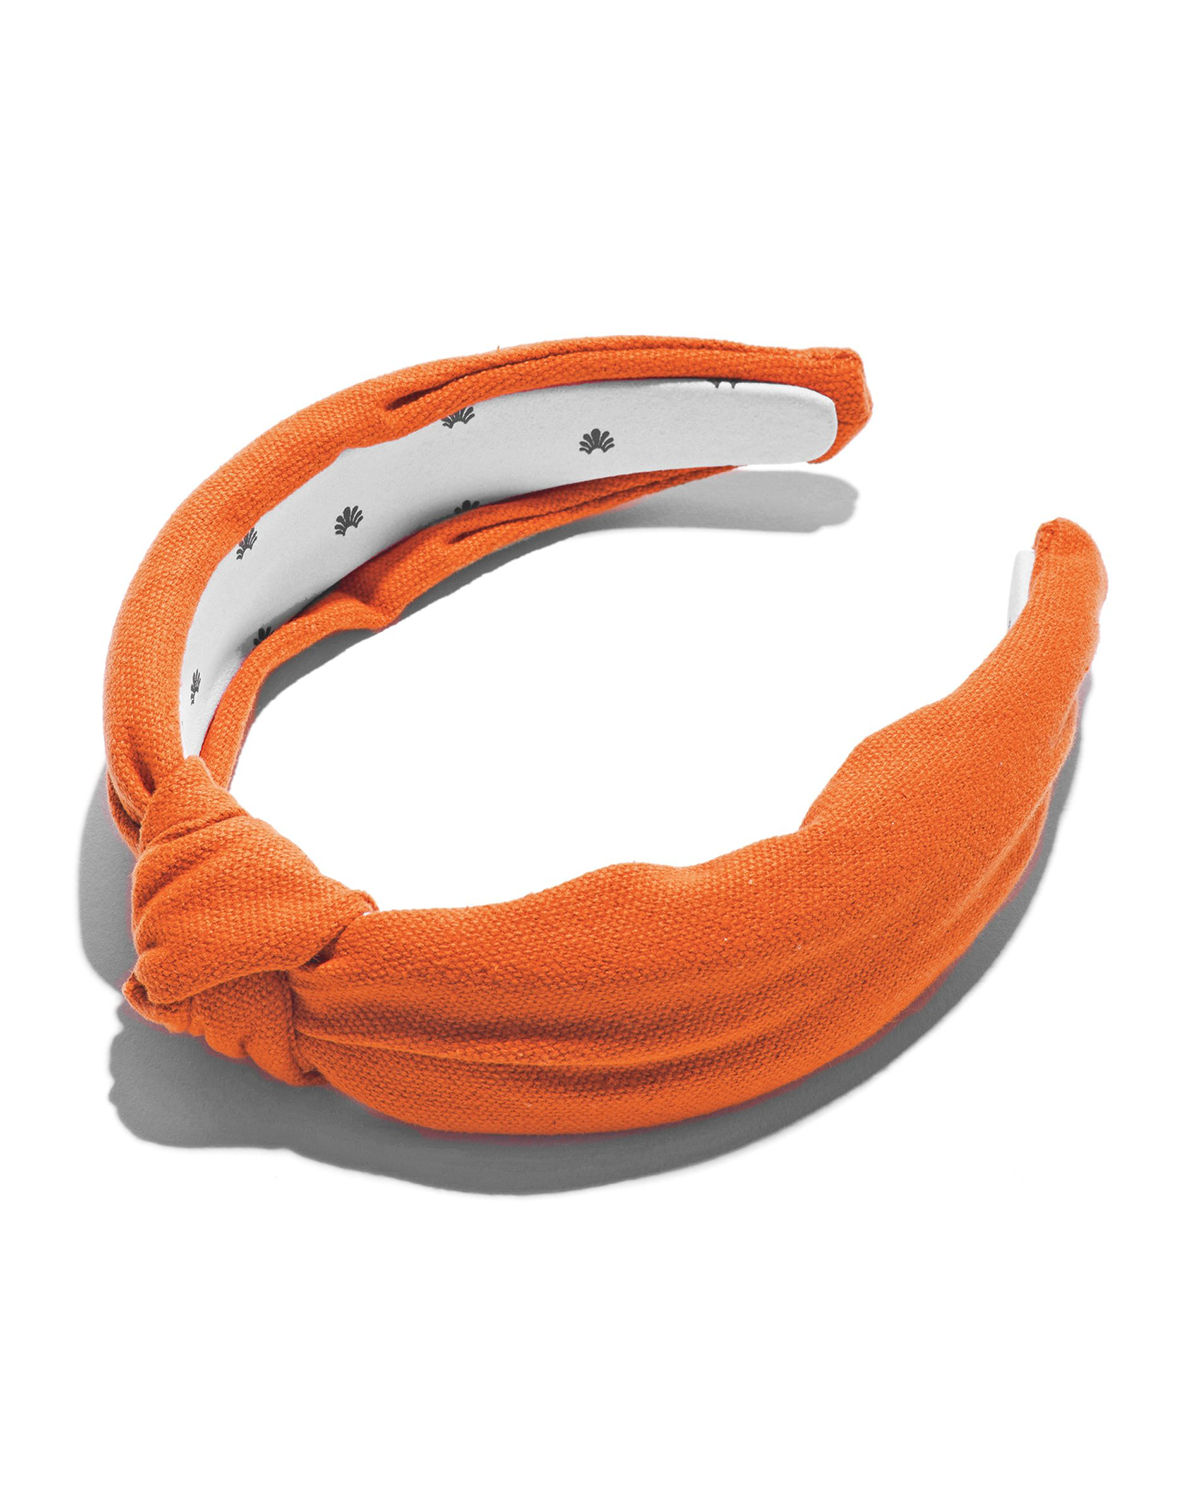 Lele Sadoughi Accessories WOVEN COTTON KNOTTED HEADBAND